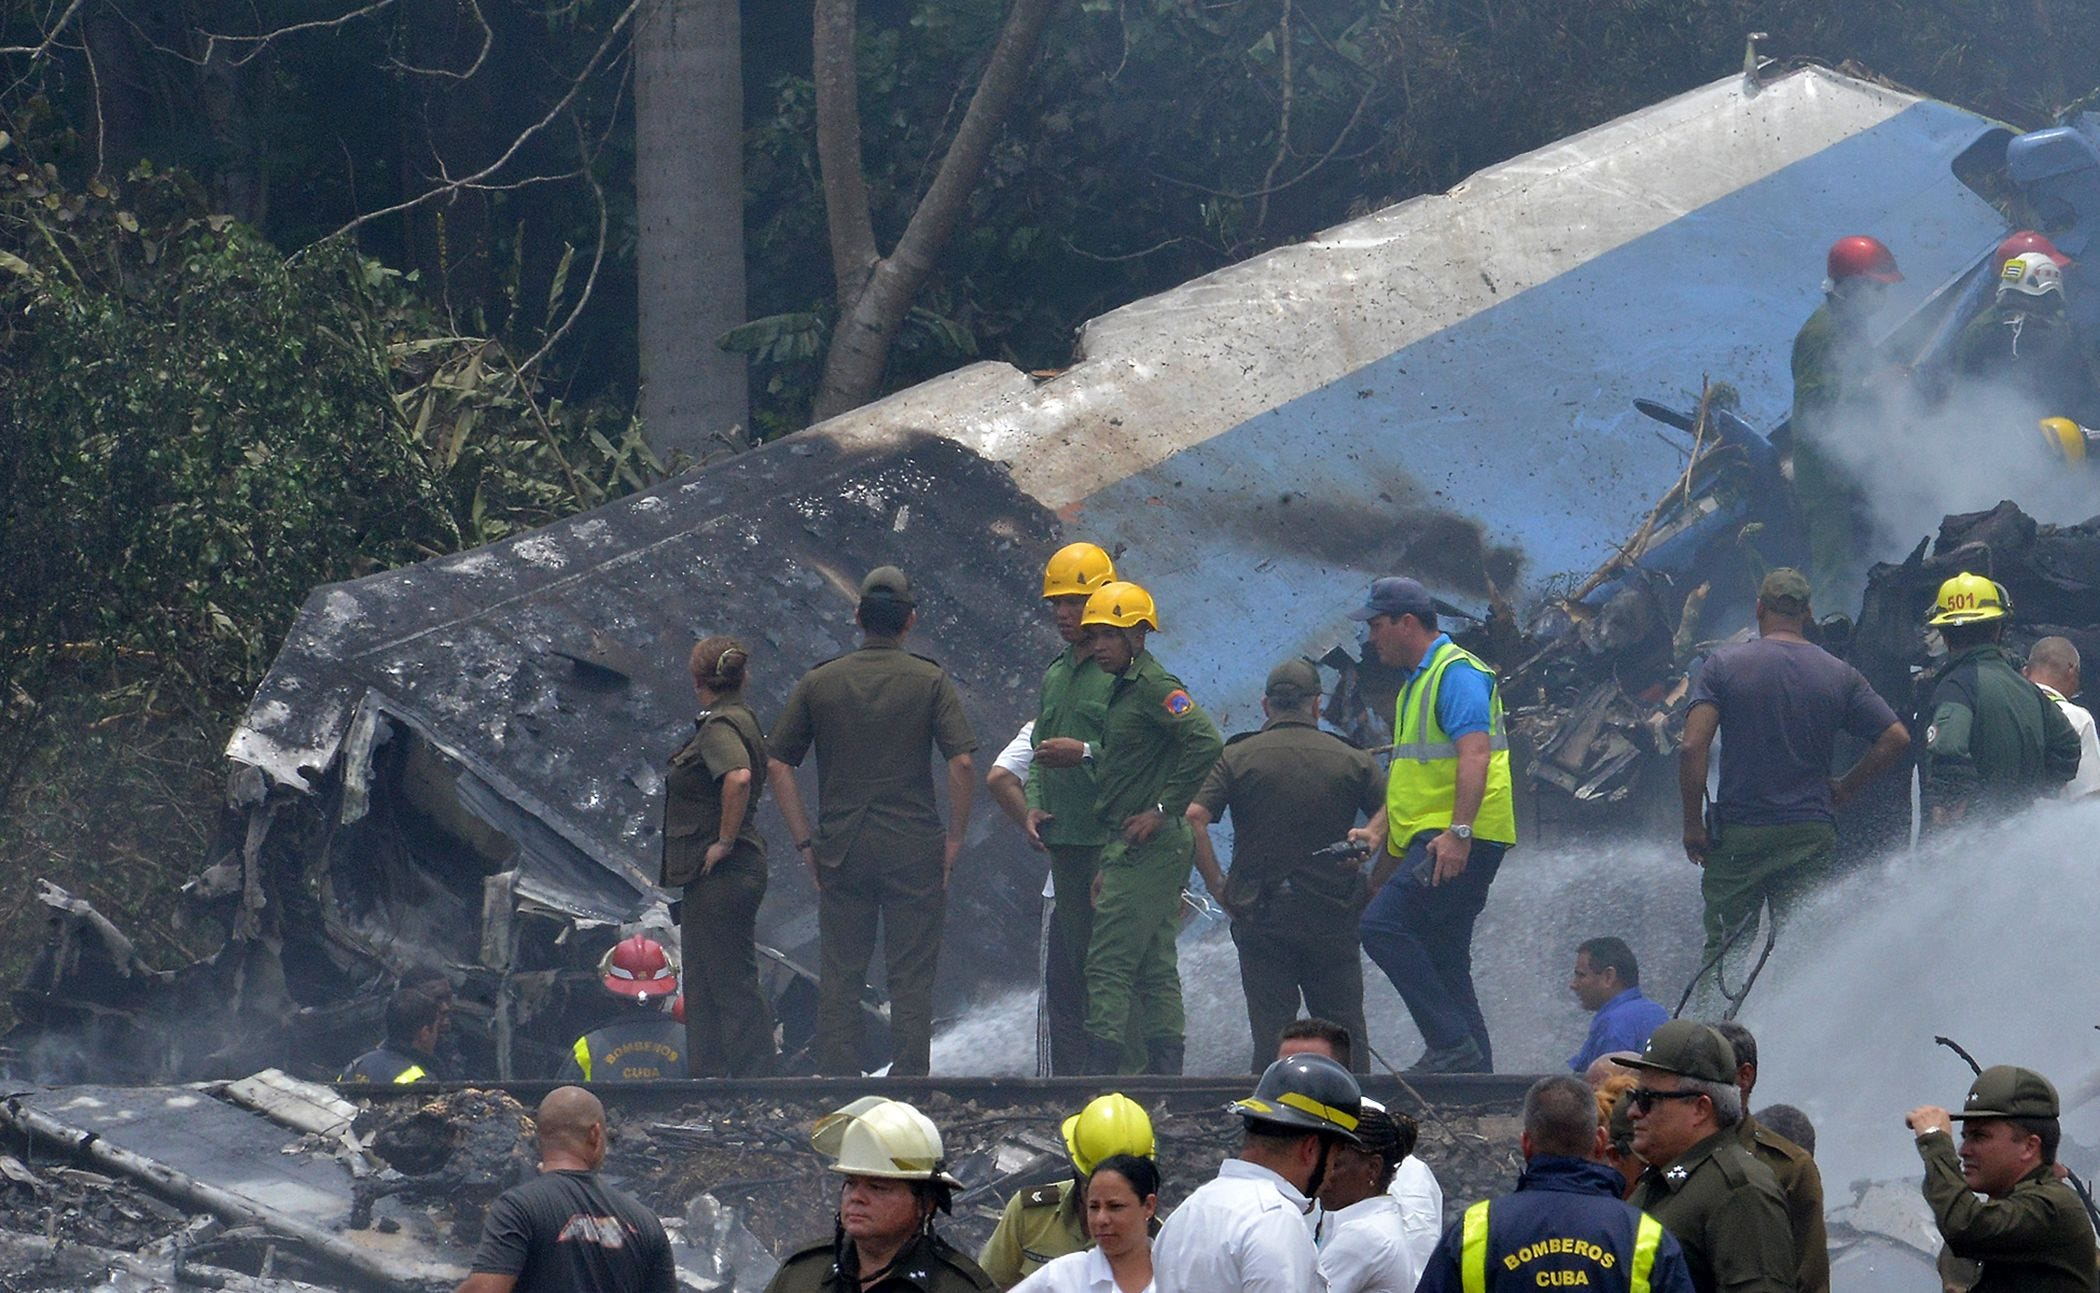 Airliner with 110 aboard crashes, burns in Cuba field